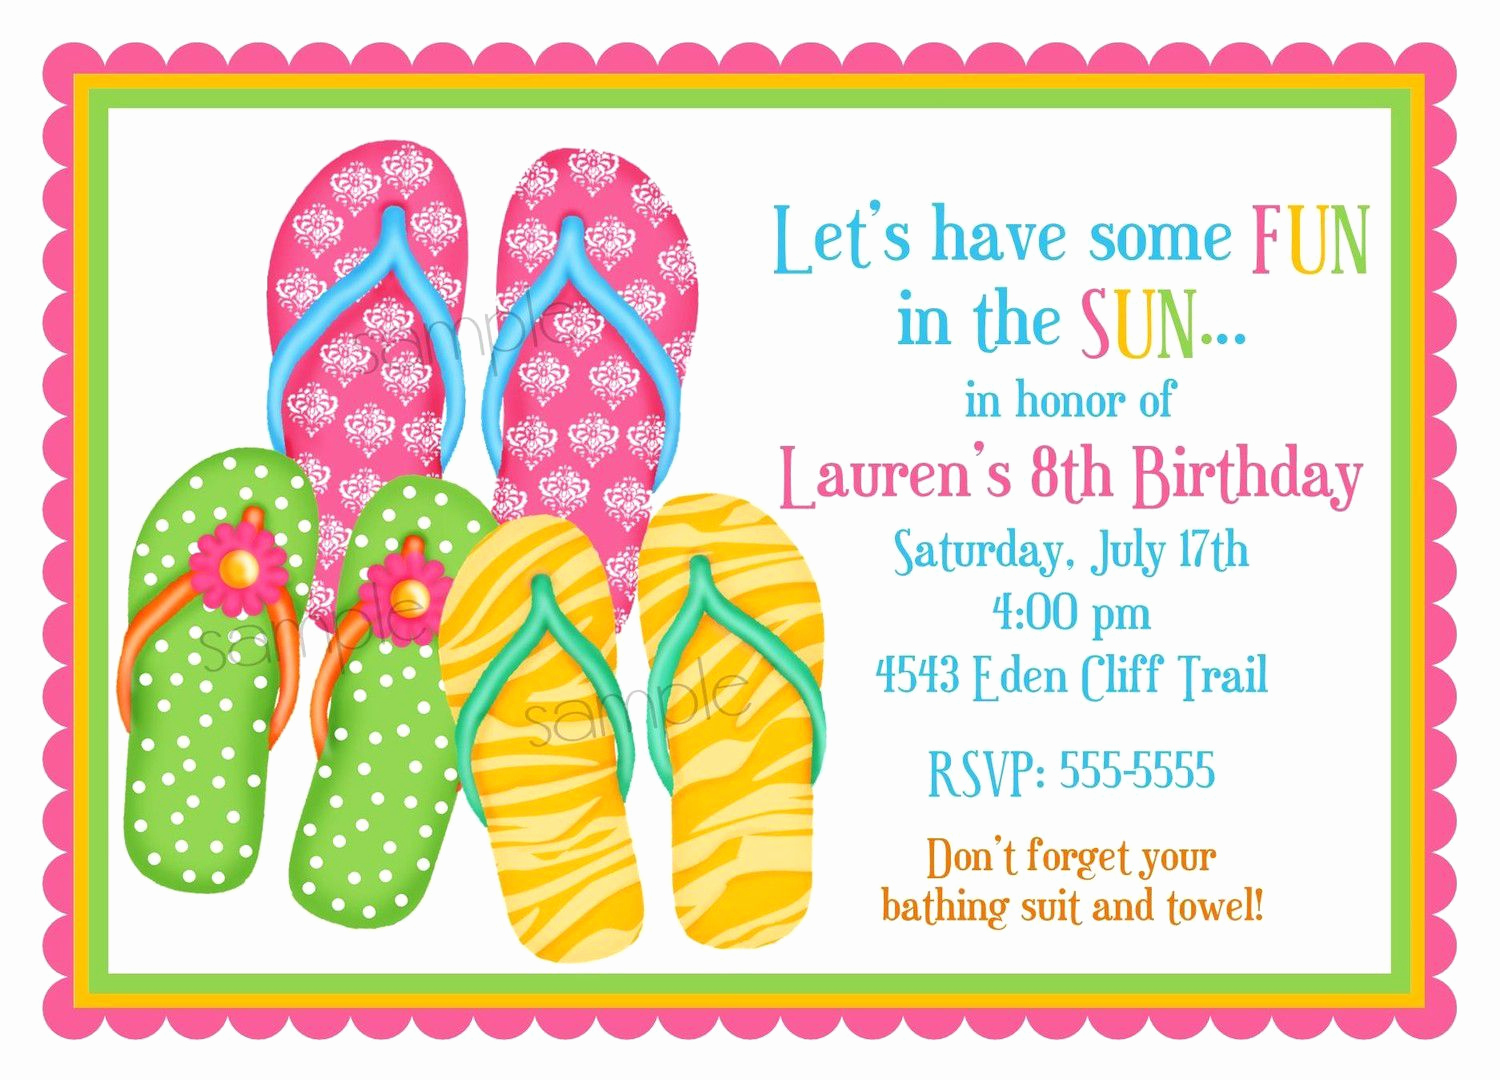 Summer Party Invitation Wording Lovely Card Template Summer Party Invitations Card Invitation